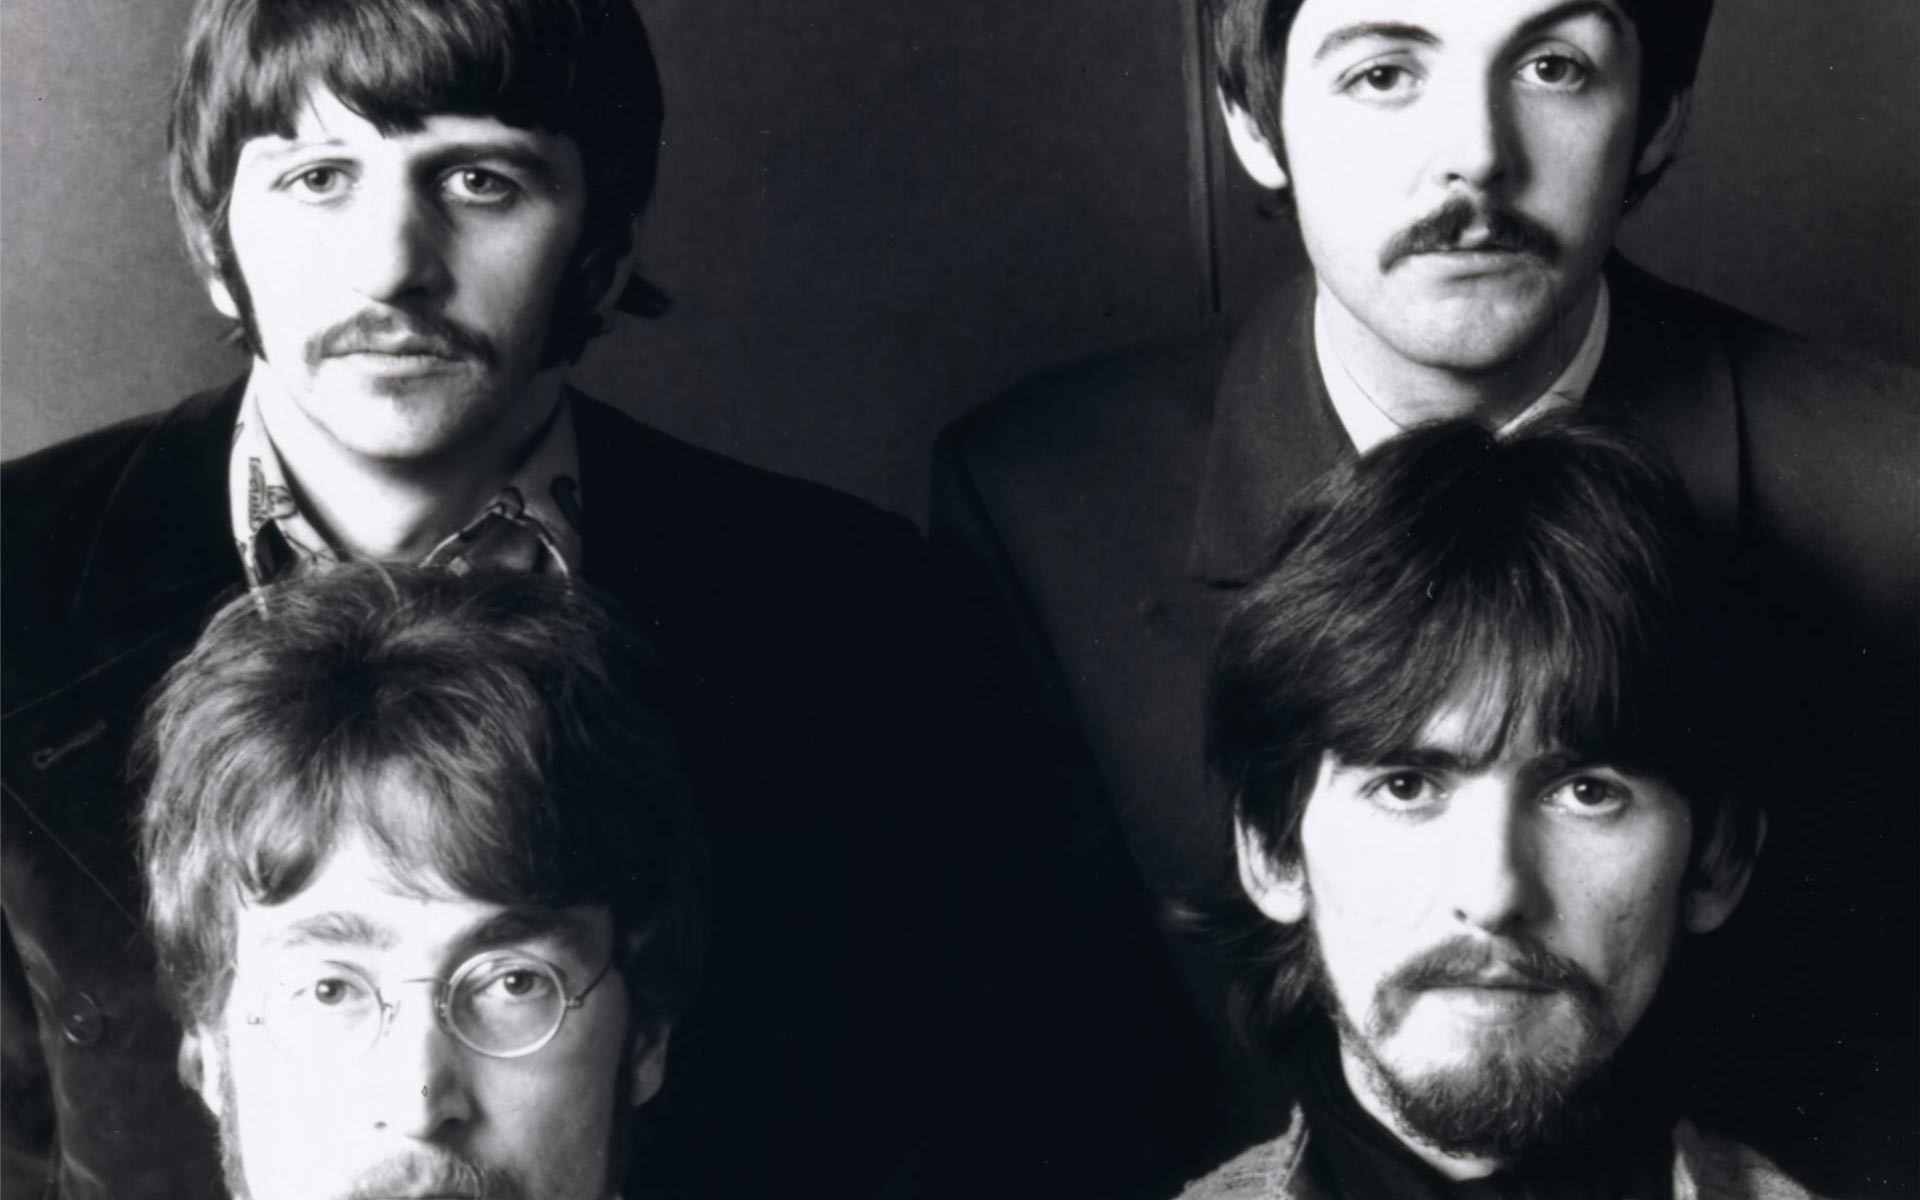 Download The Beatles 1920x1200 Wallpaper